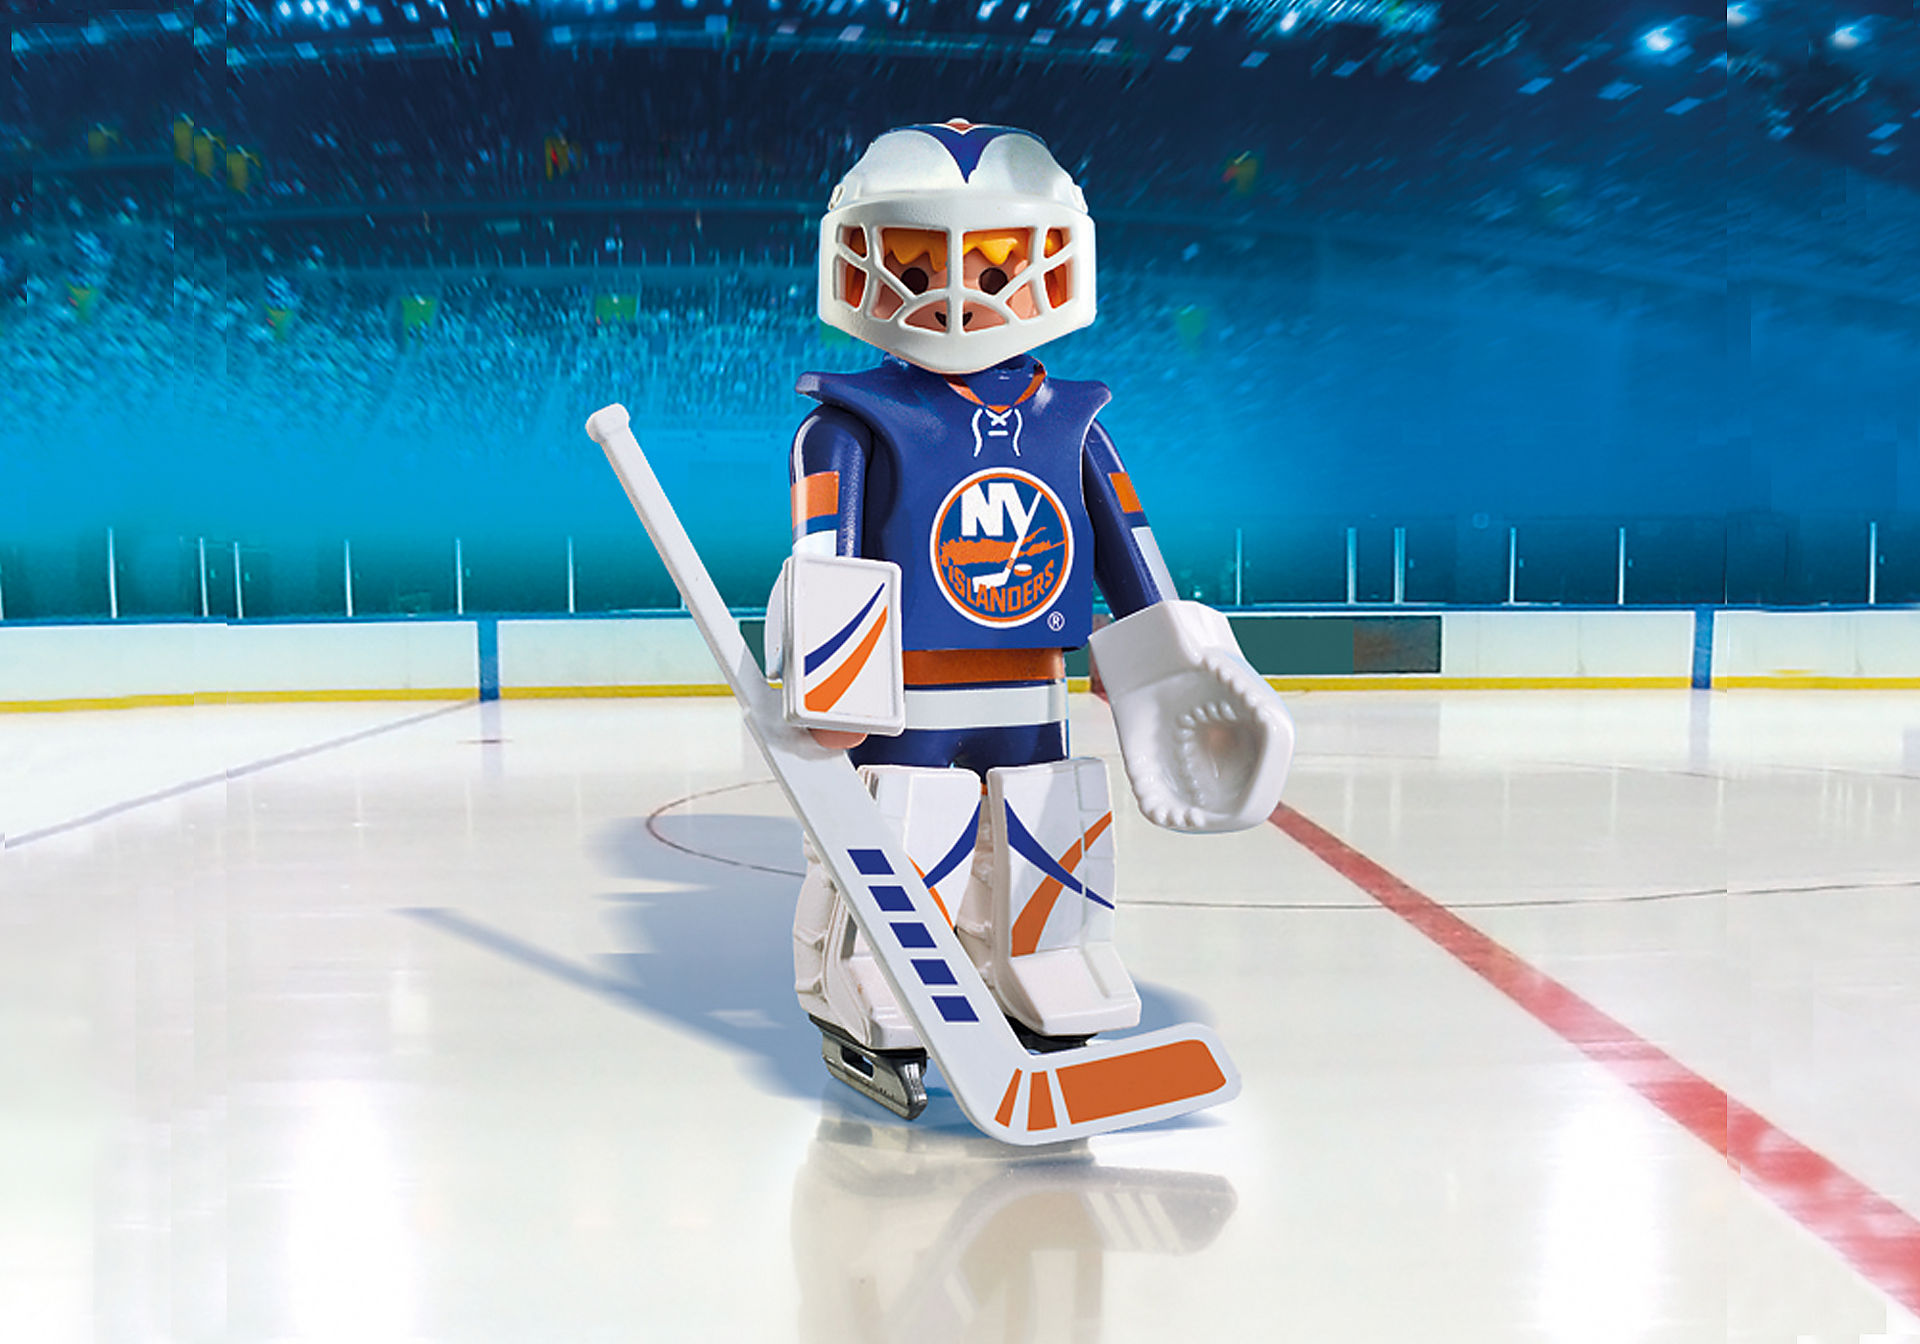 9098 NHL™ New York Islanders™ Goalie zoom image1